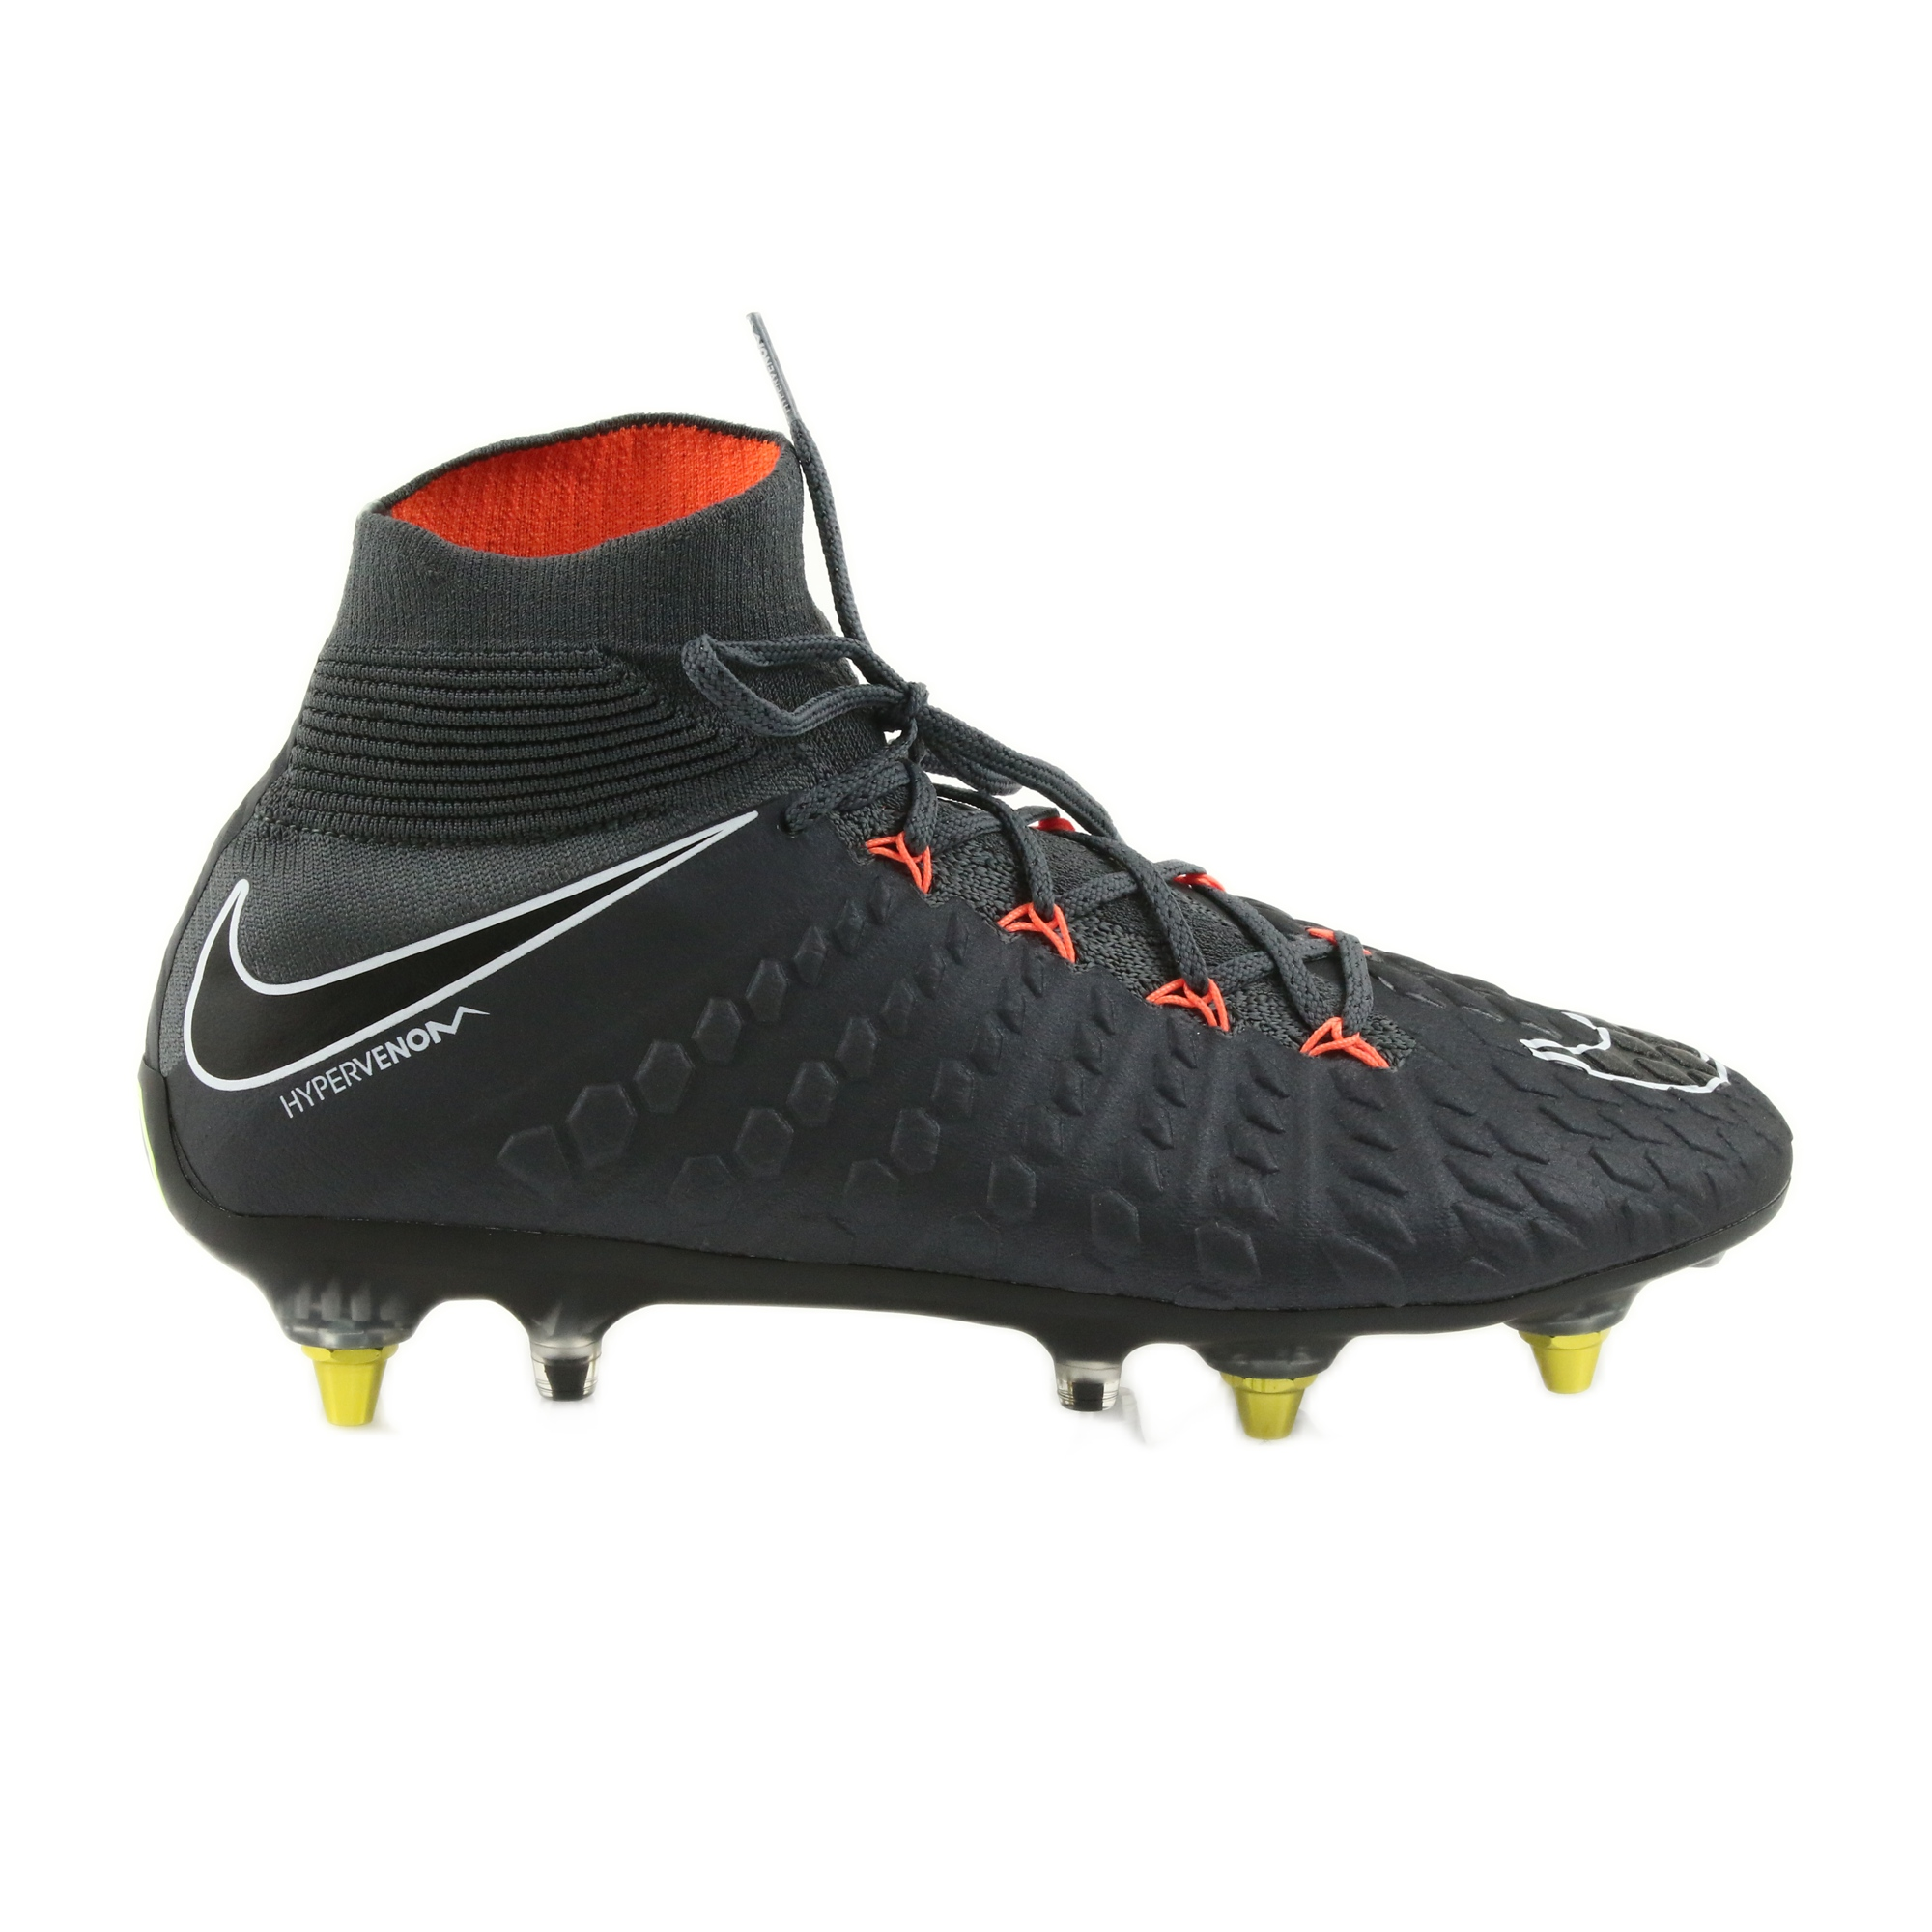 new product c33c6 01da8 Football shoes Nike Hypervenom Phantom 3